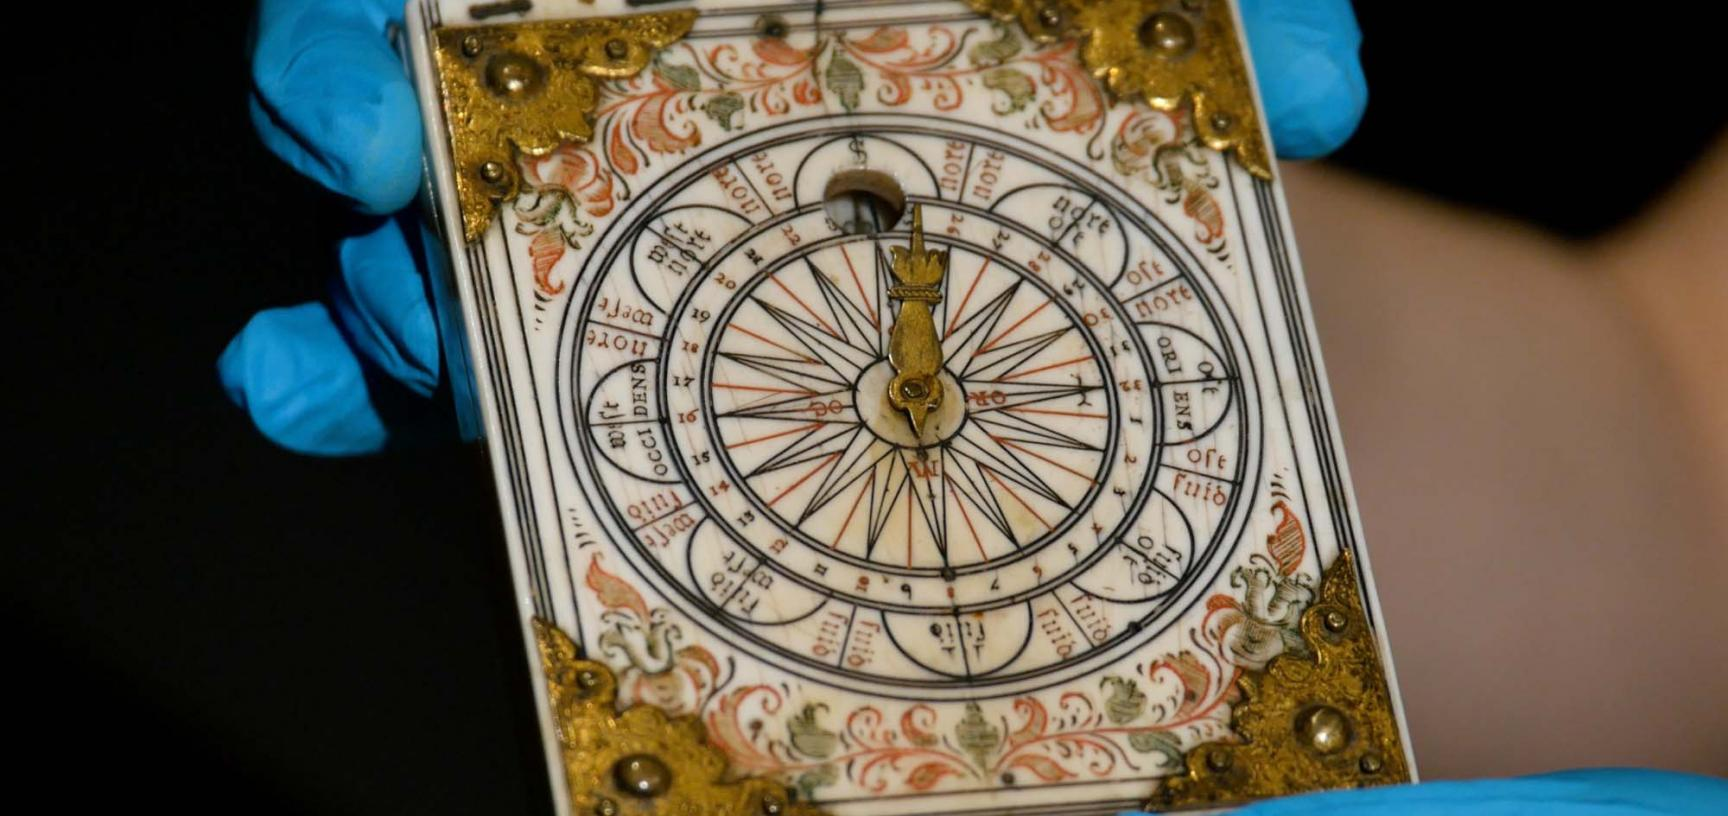 diptych dial